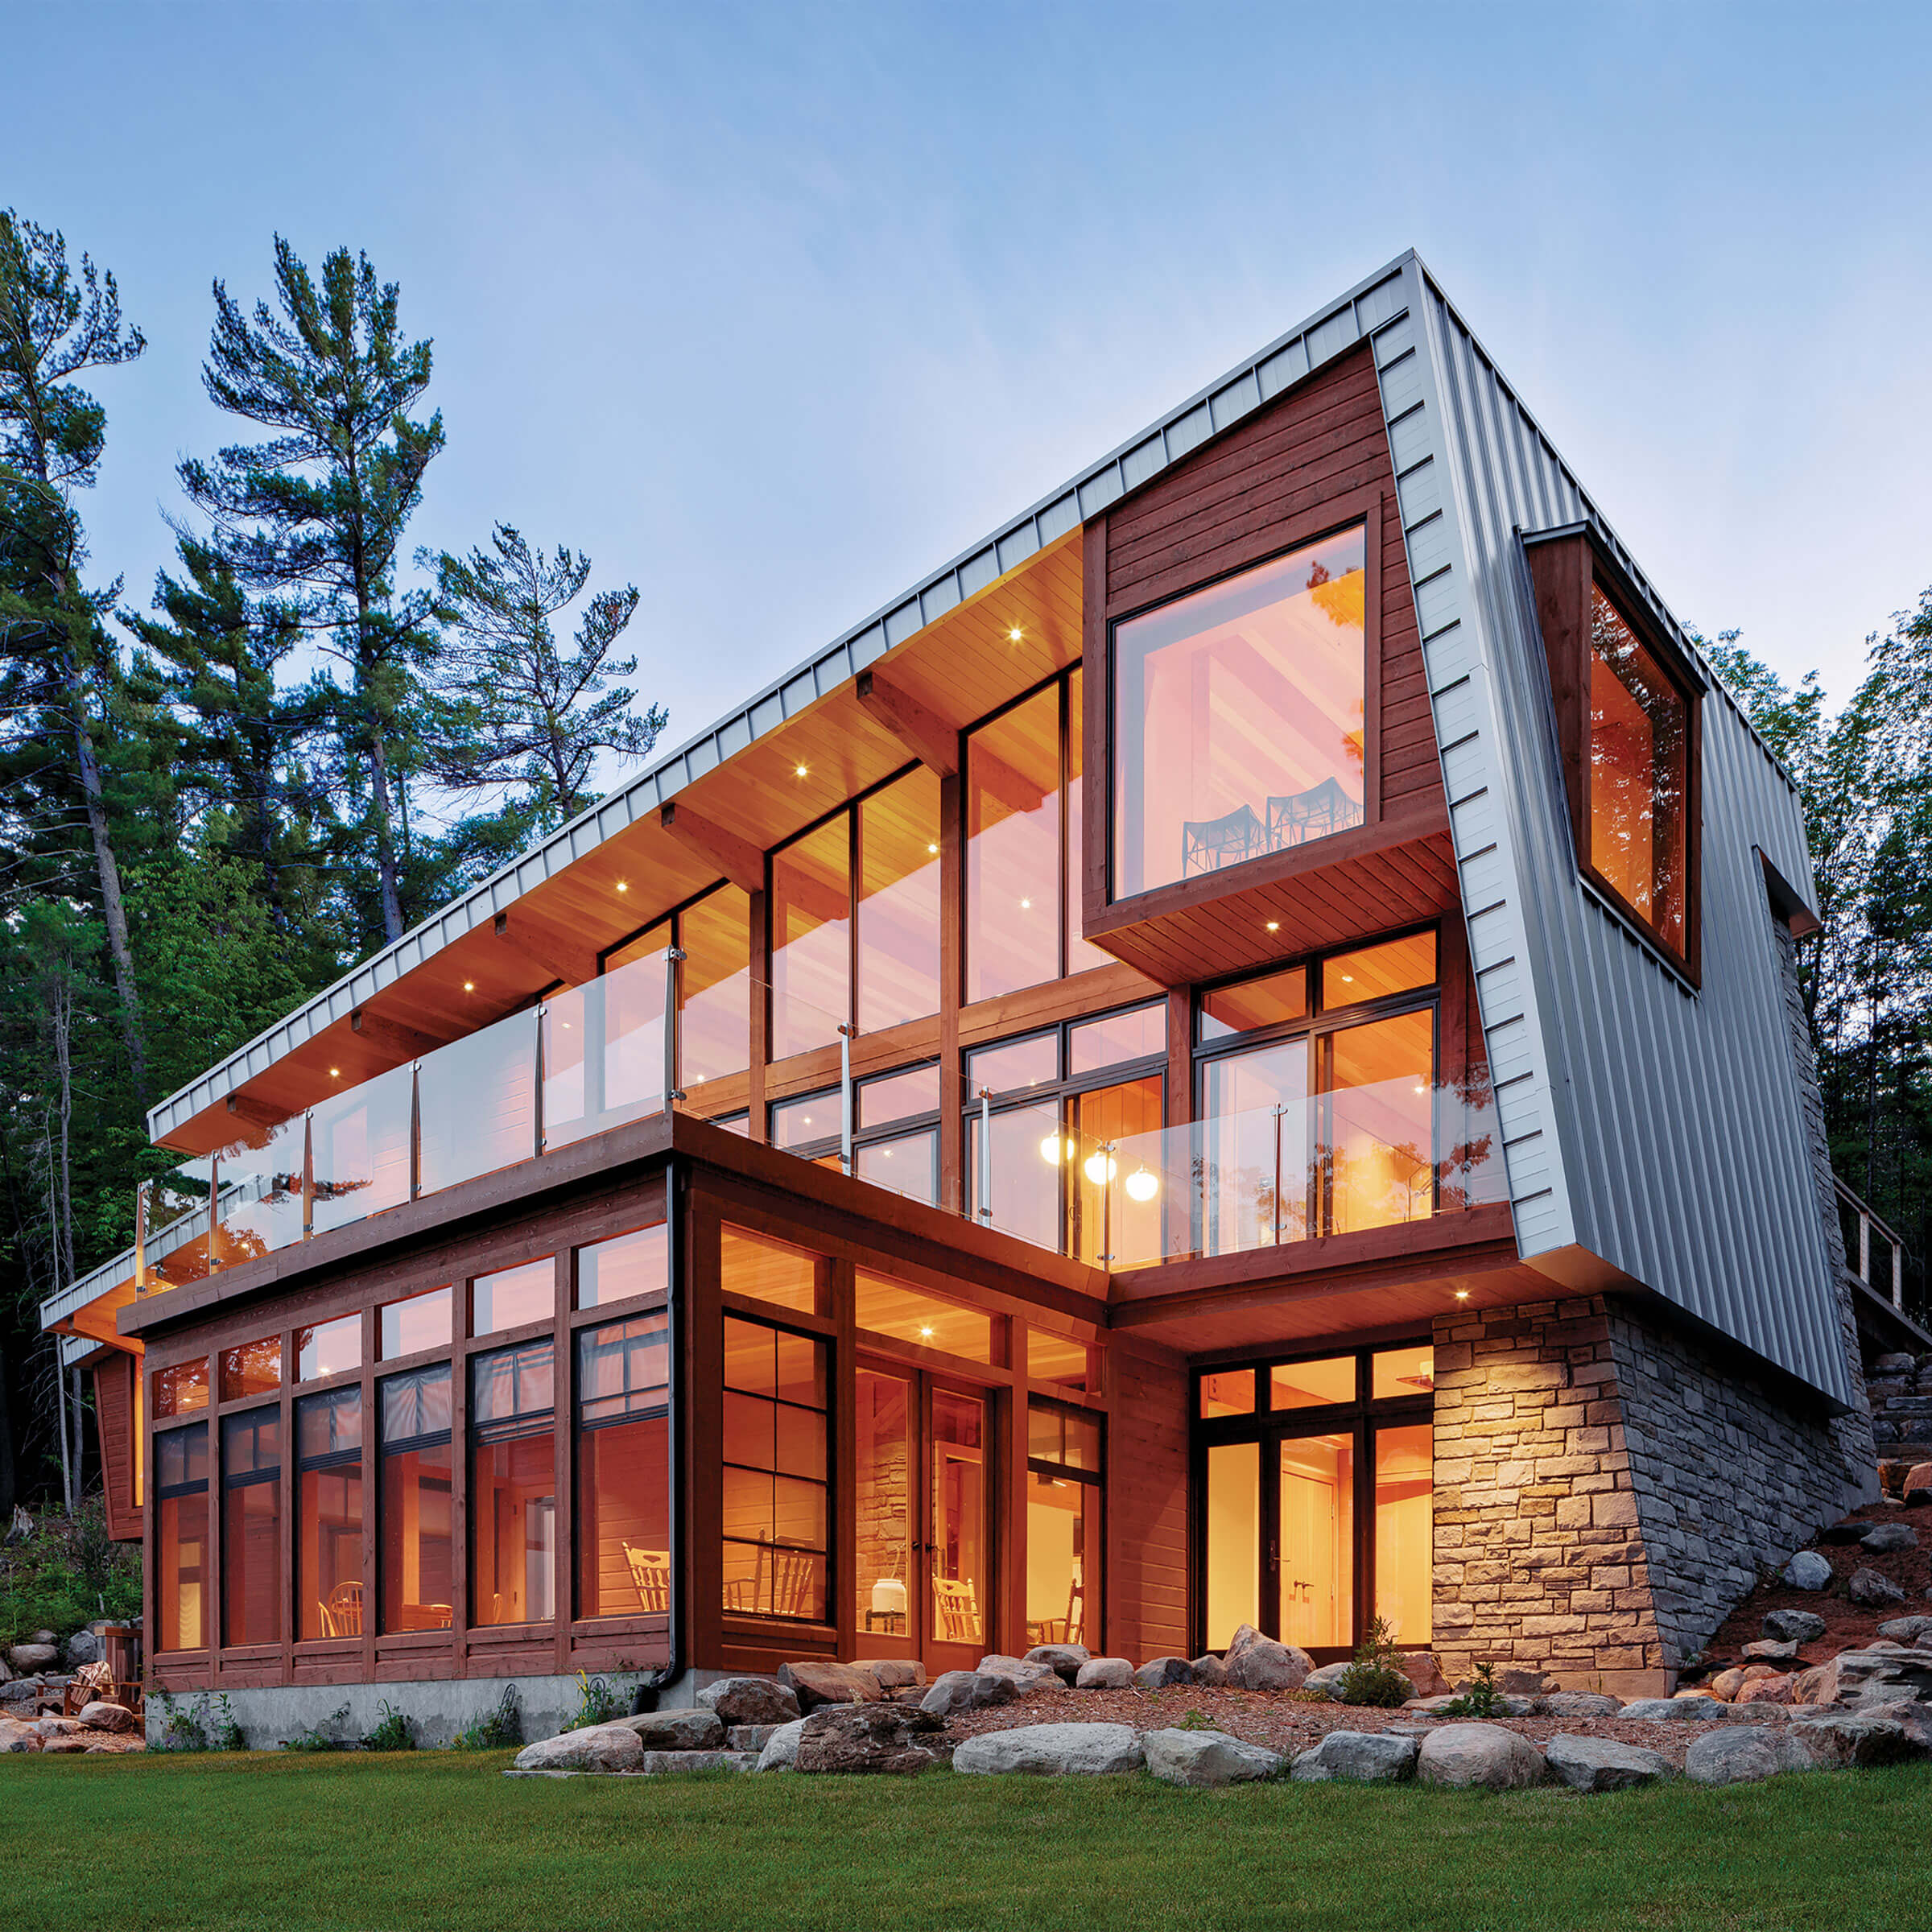 Exterior View Of Brightly Lit House With Signature Ultimate Specialty Shapes Windows